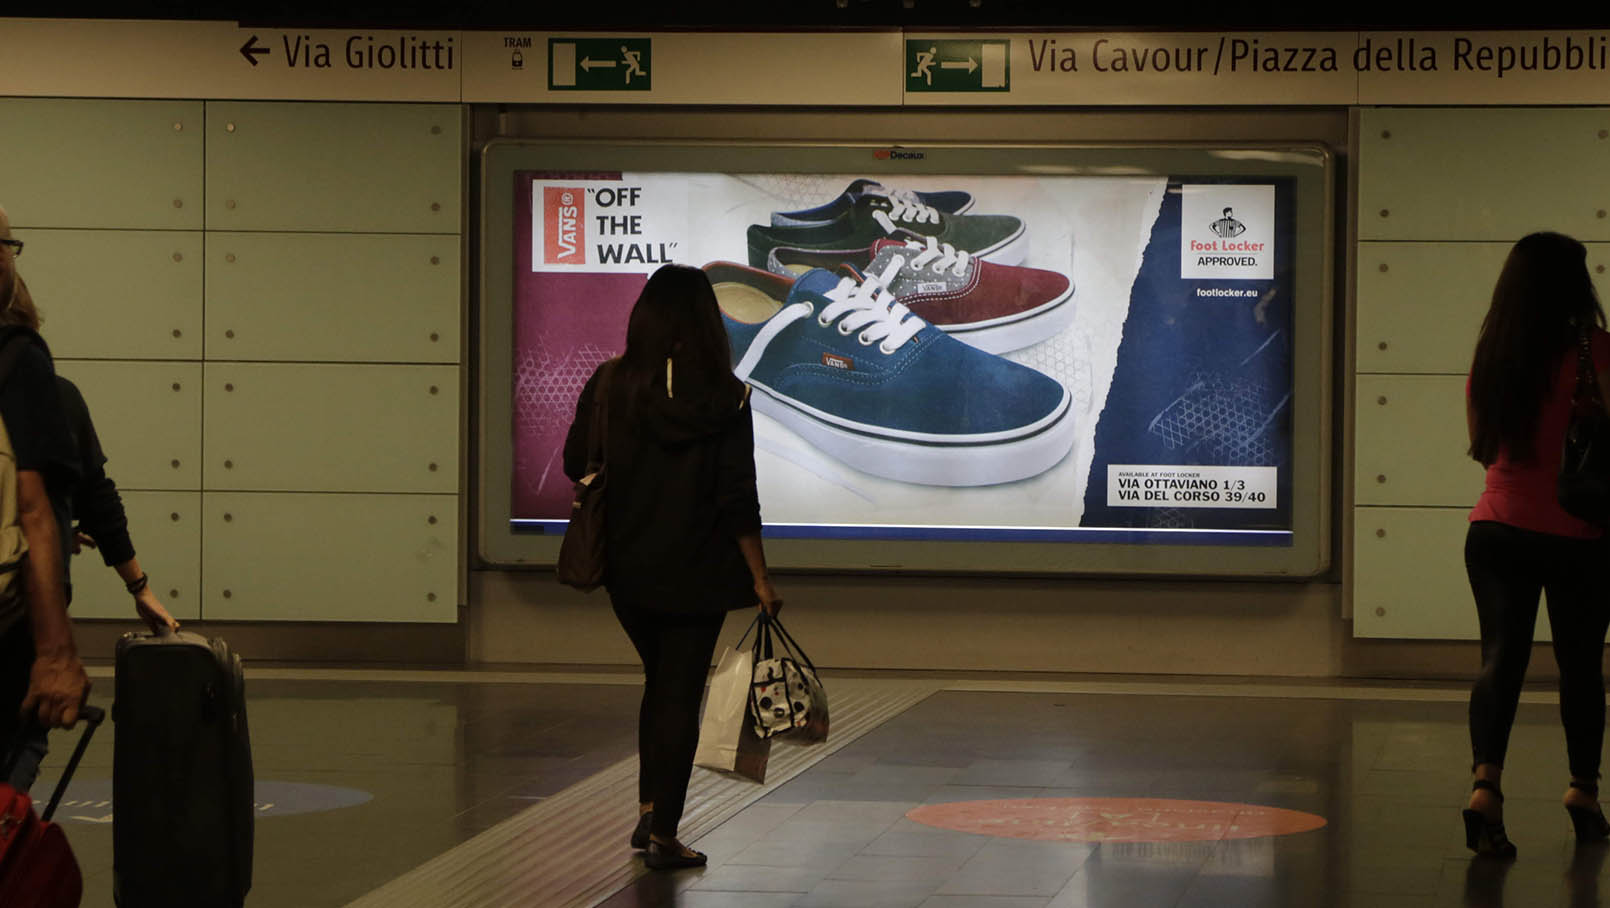 Metropolitana foot locker foot locker vans 2014 9 - Foot locker porta di roma ...